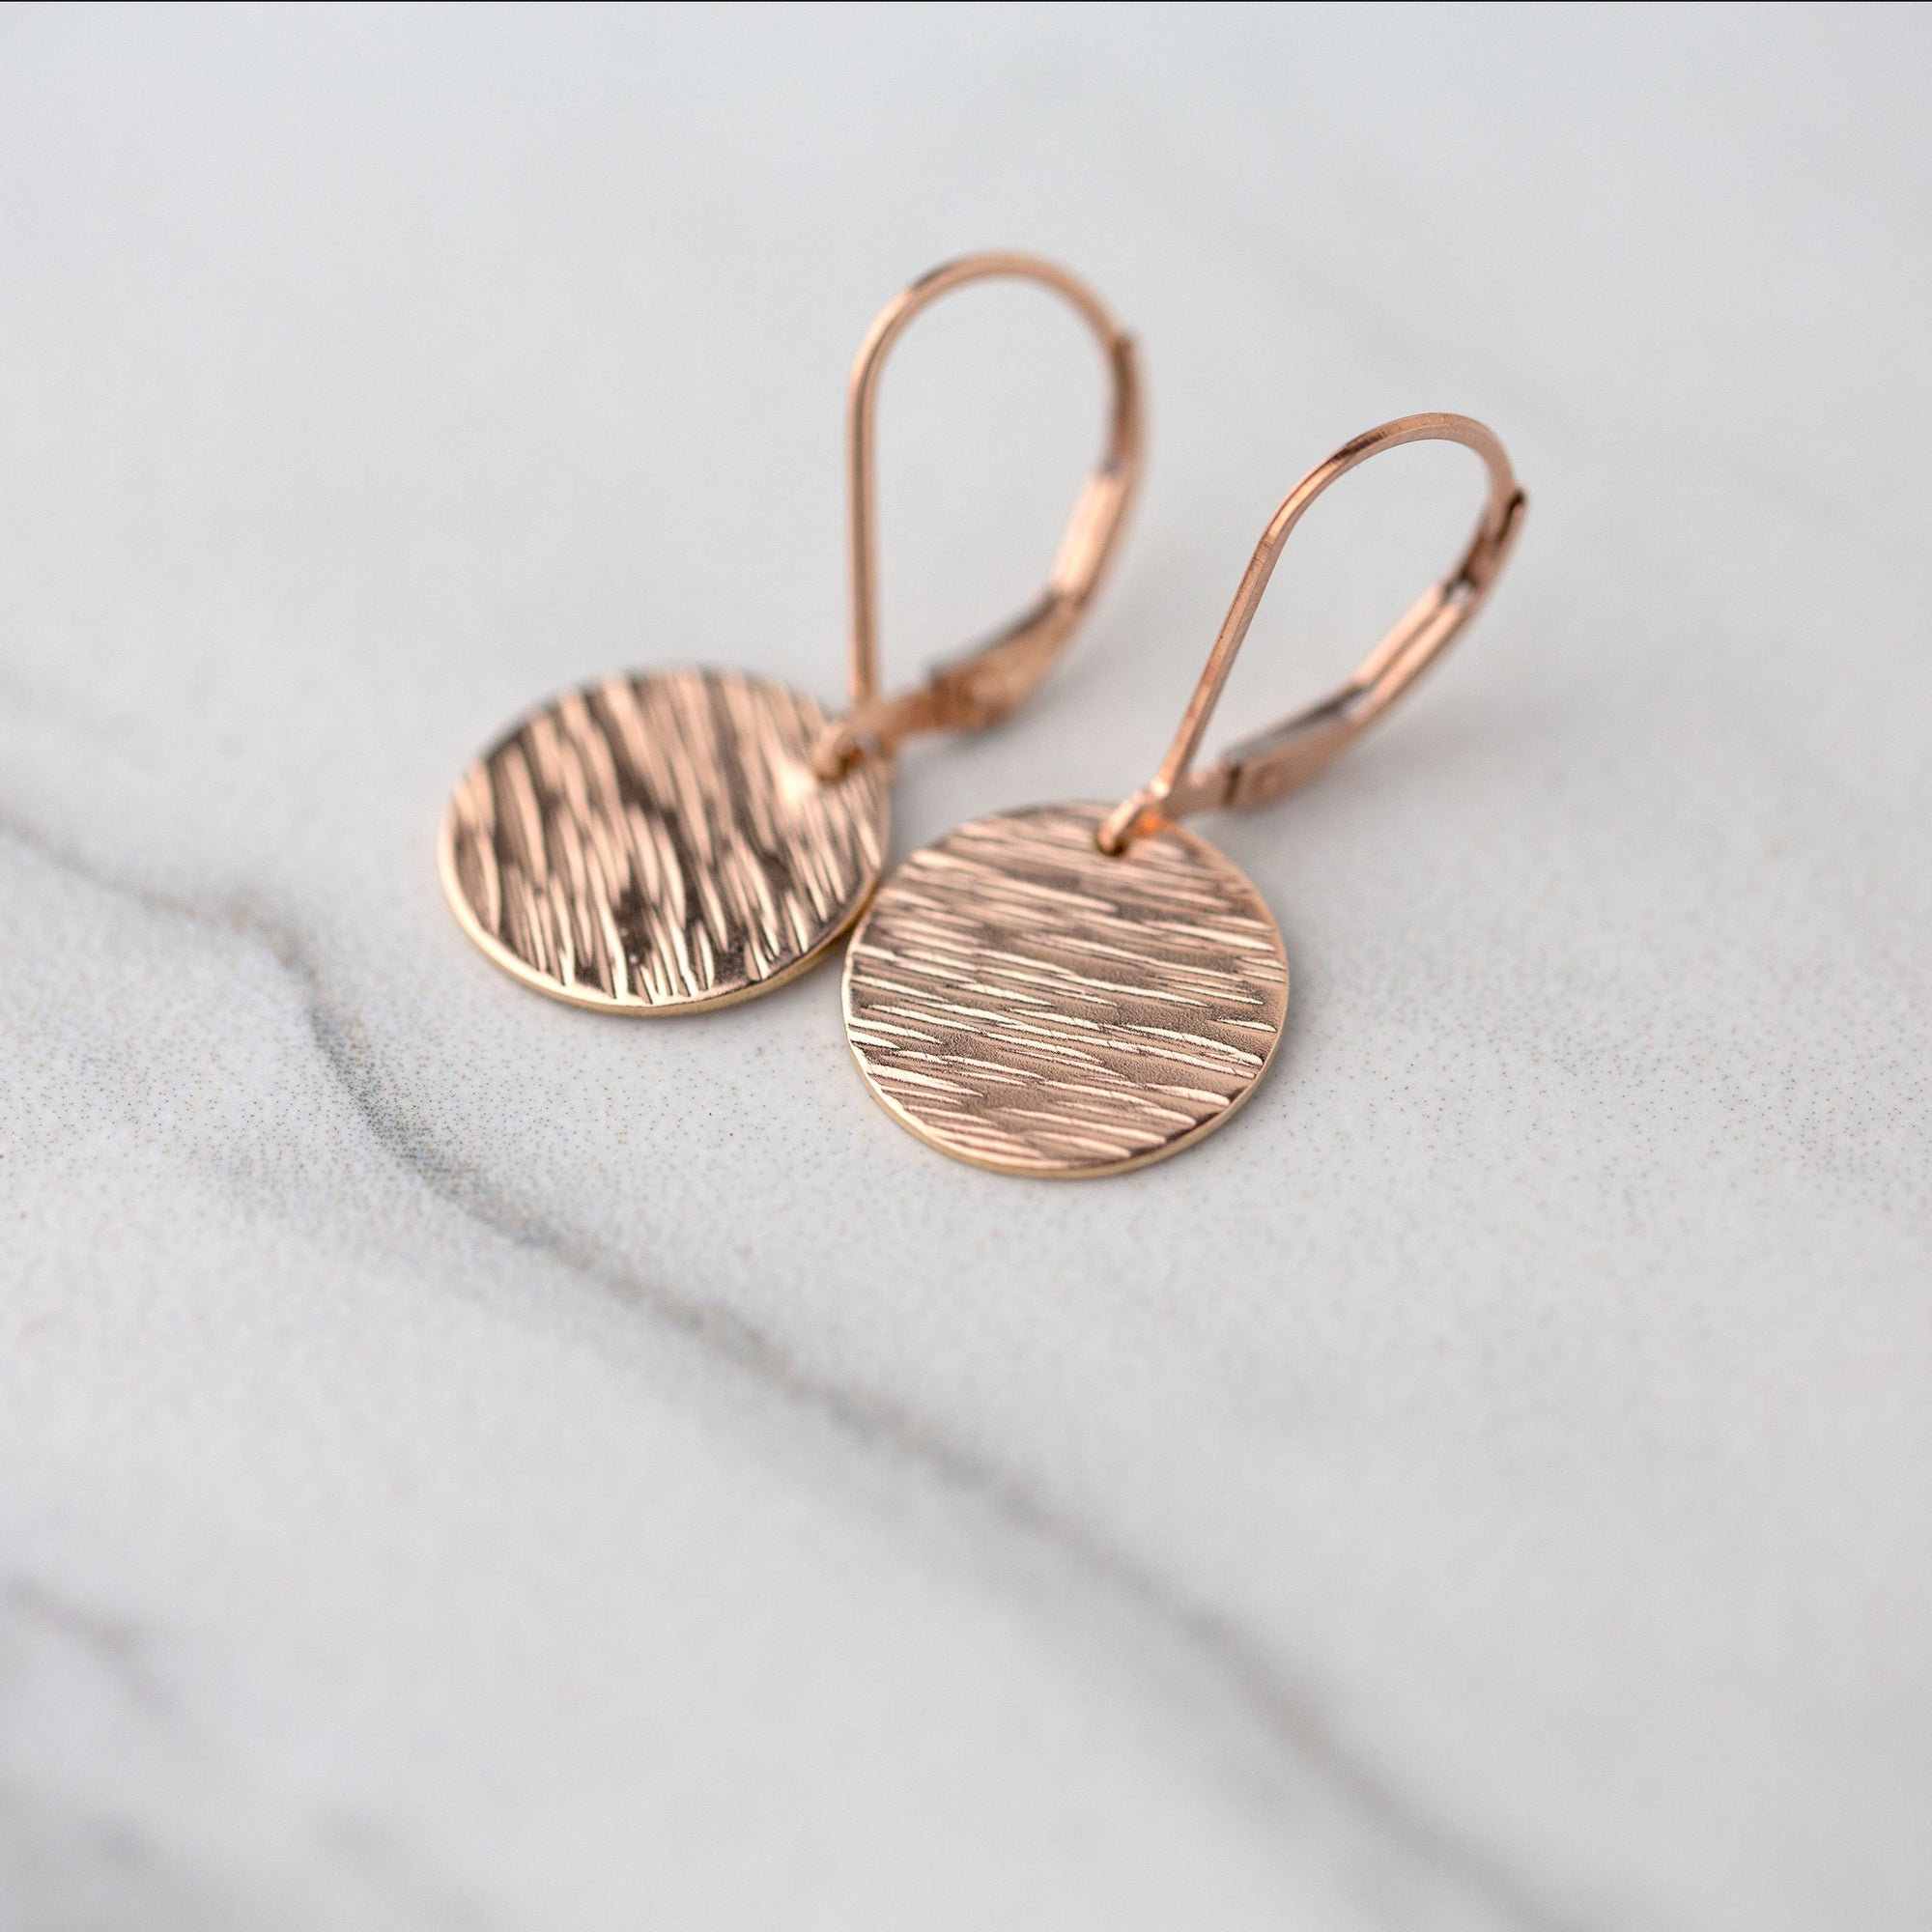 Medium Rose Gold Hammered Bark Lever-back Earrings